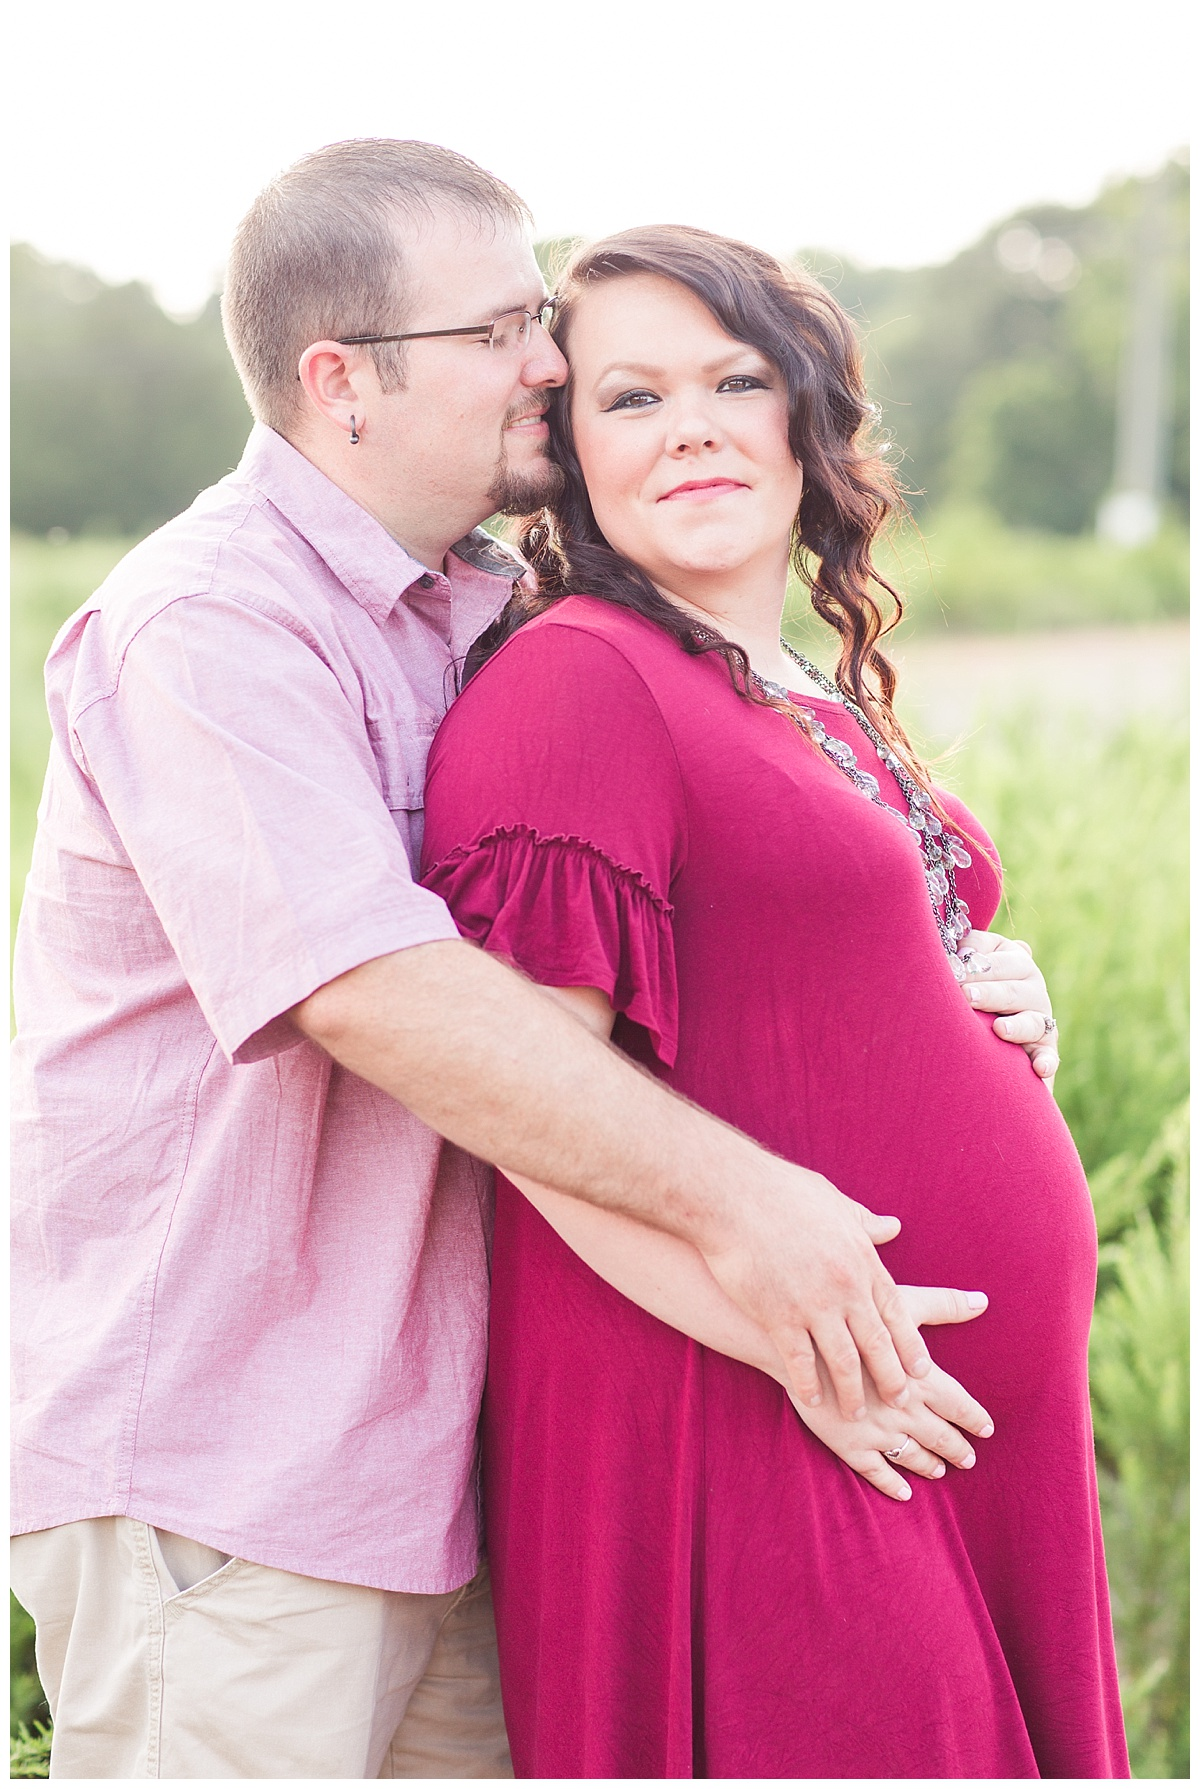 monroe_ga_maternity_photography_0003.jpg